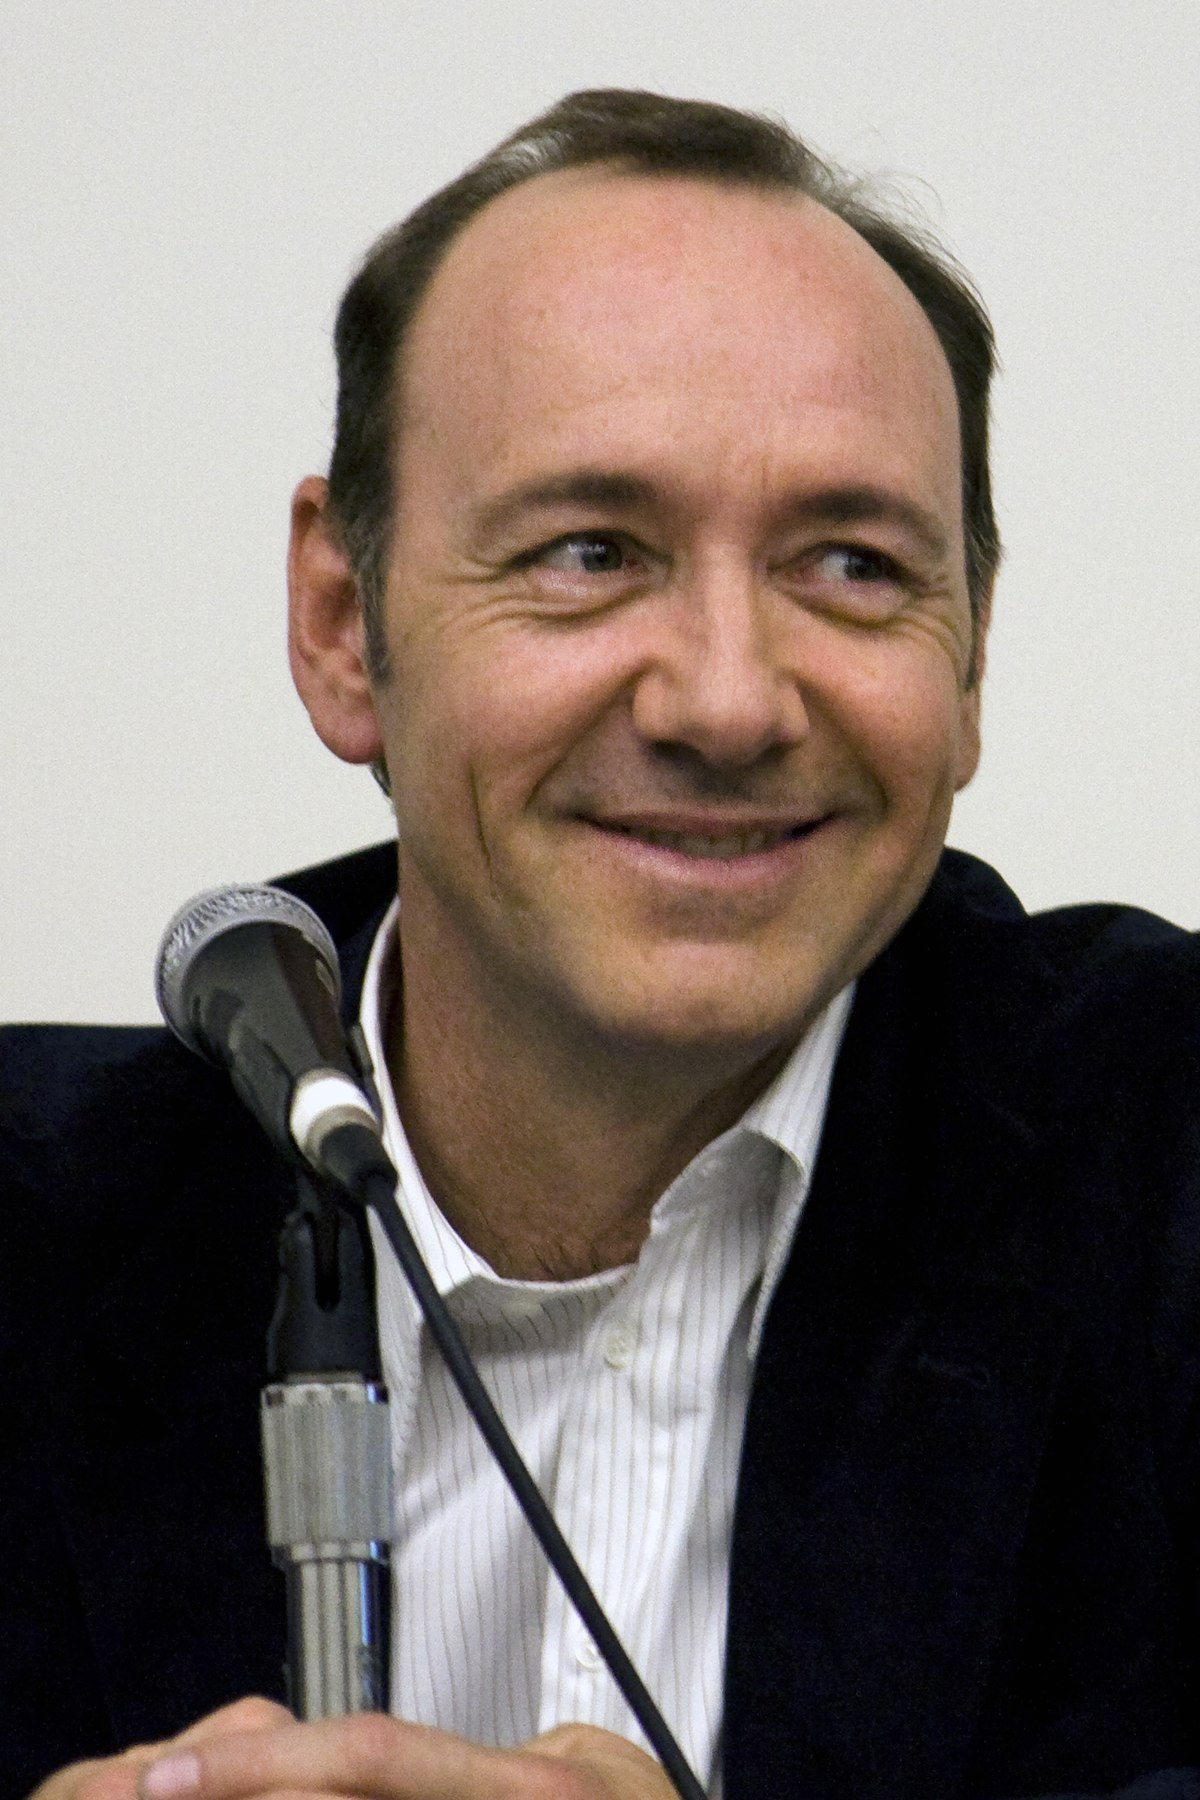 Kevin Spacey filmography - Wikipedia